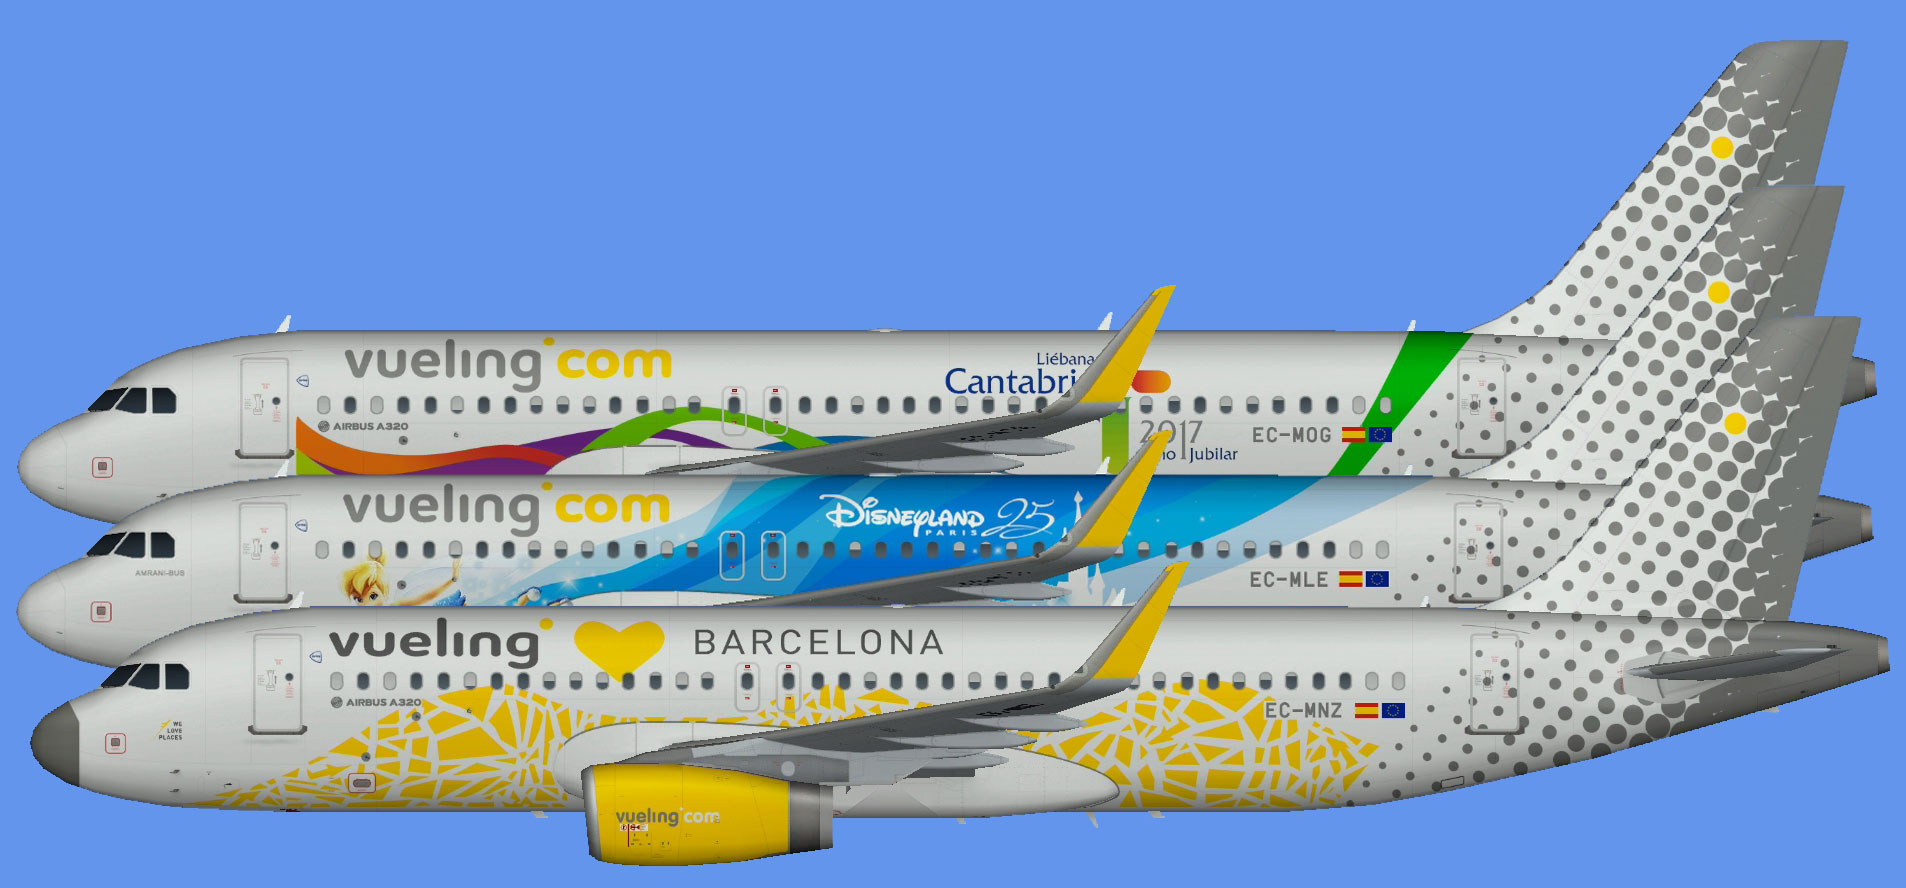 Vueling Airbus A320 logojets